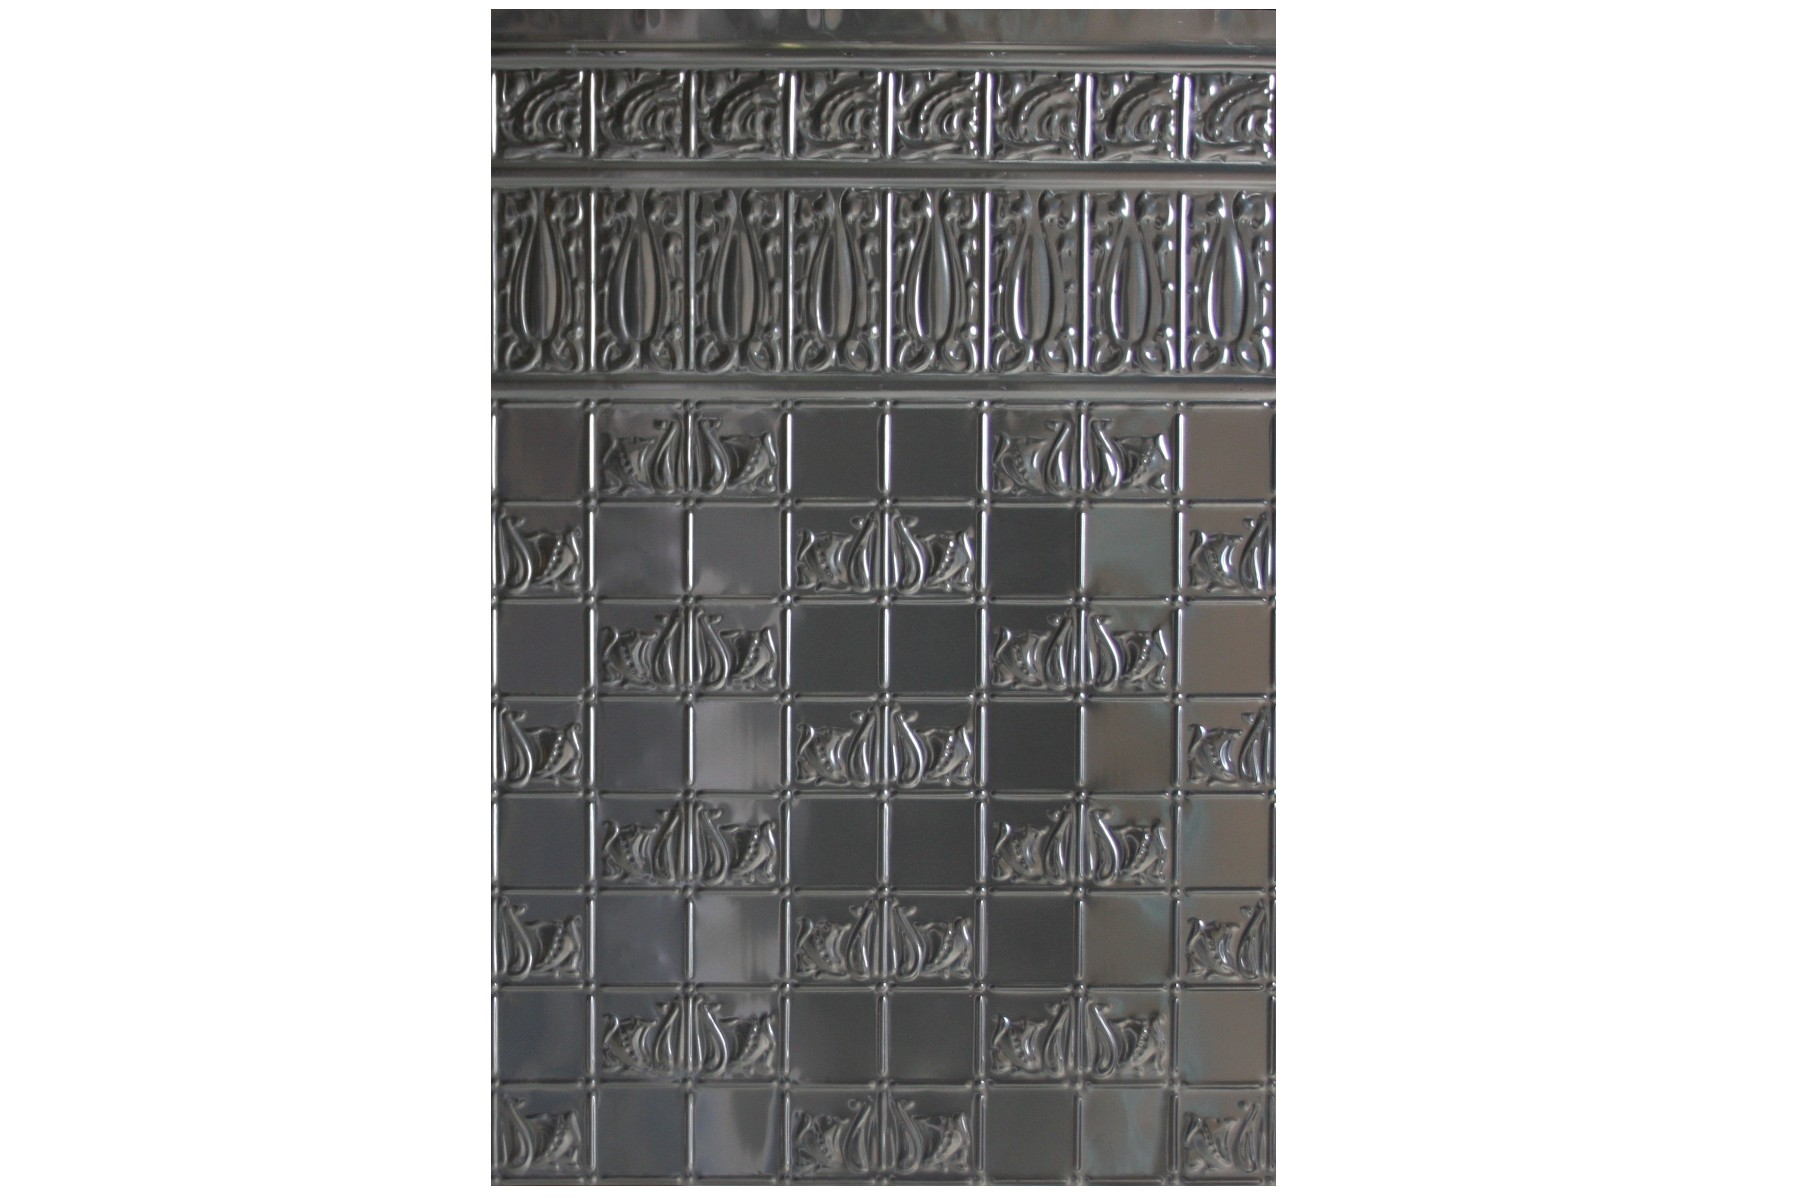 Wunderlich Pressed Metal Panels No 1349 Wall Panel